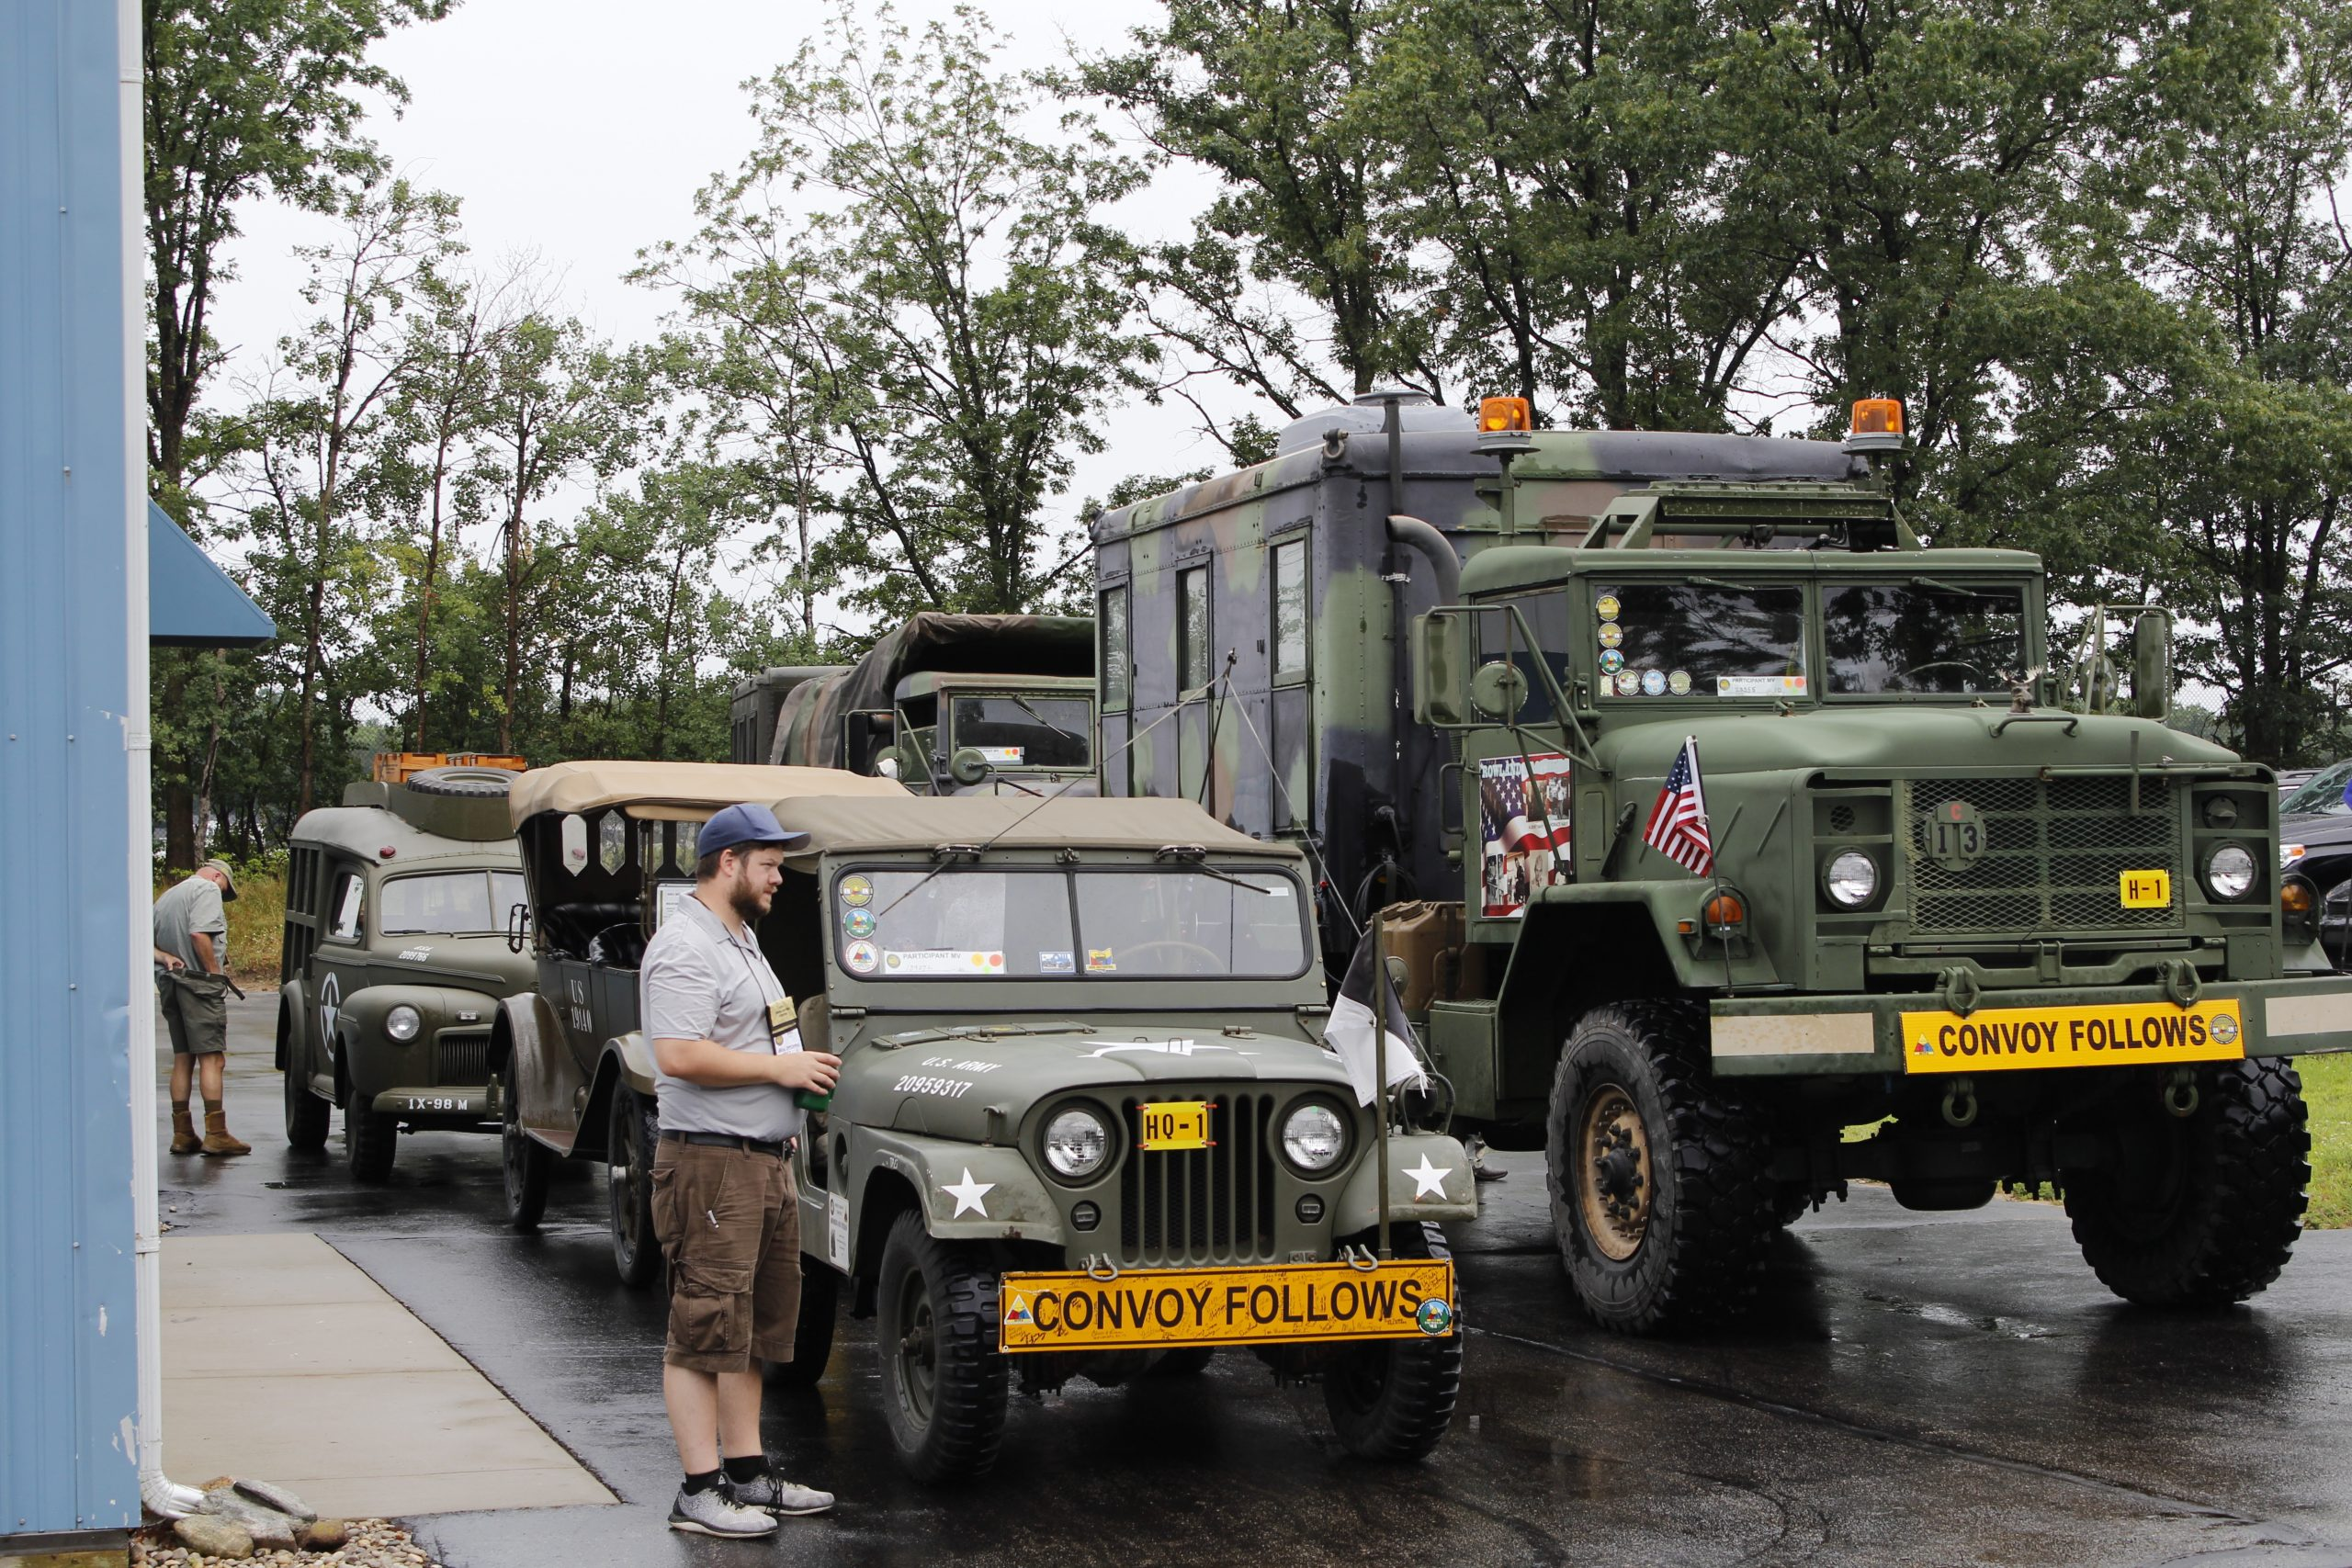 Military vehicle convoy parking